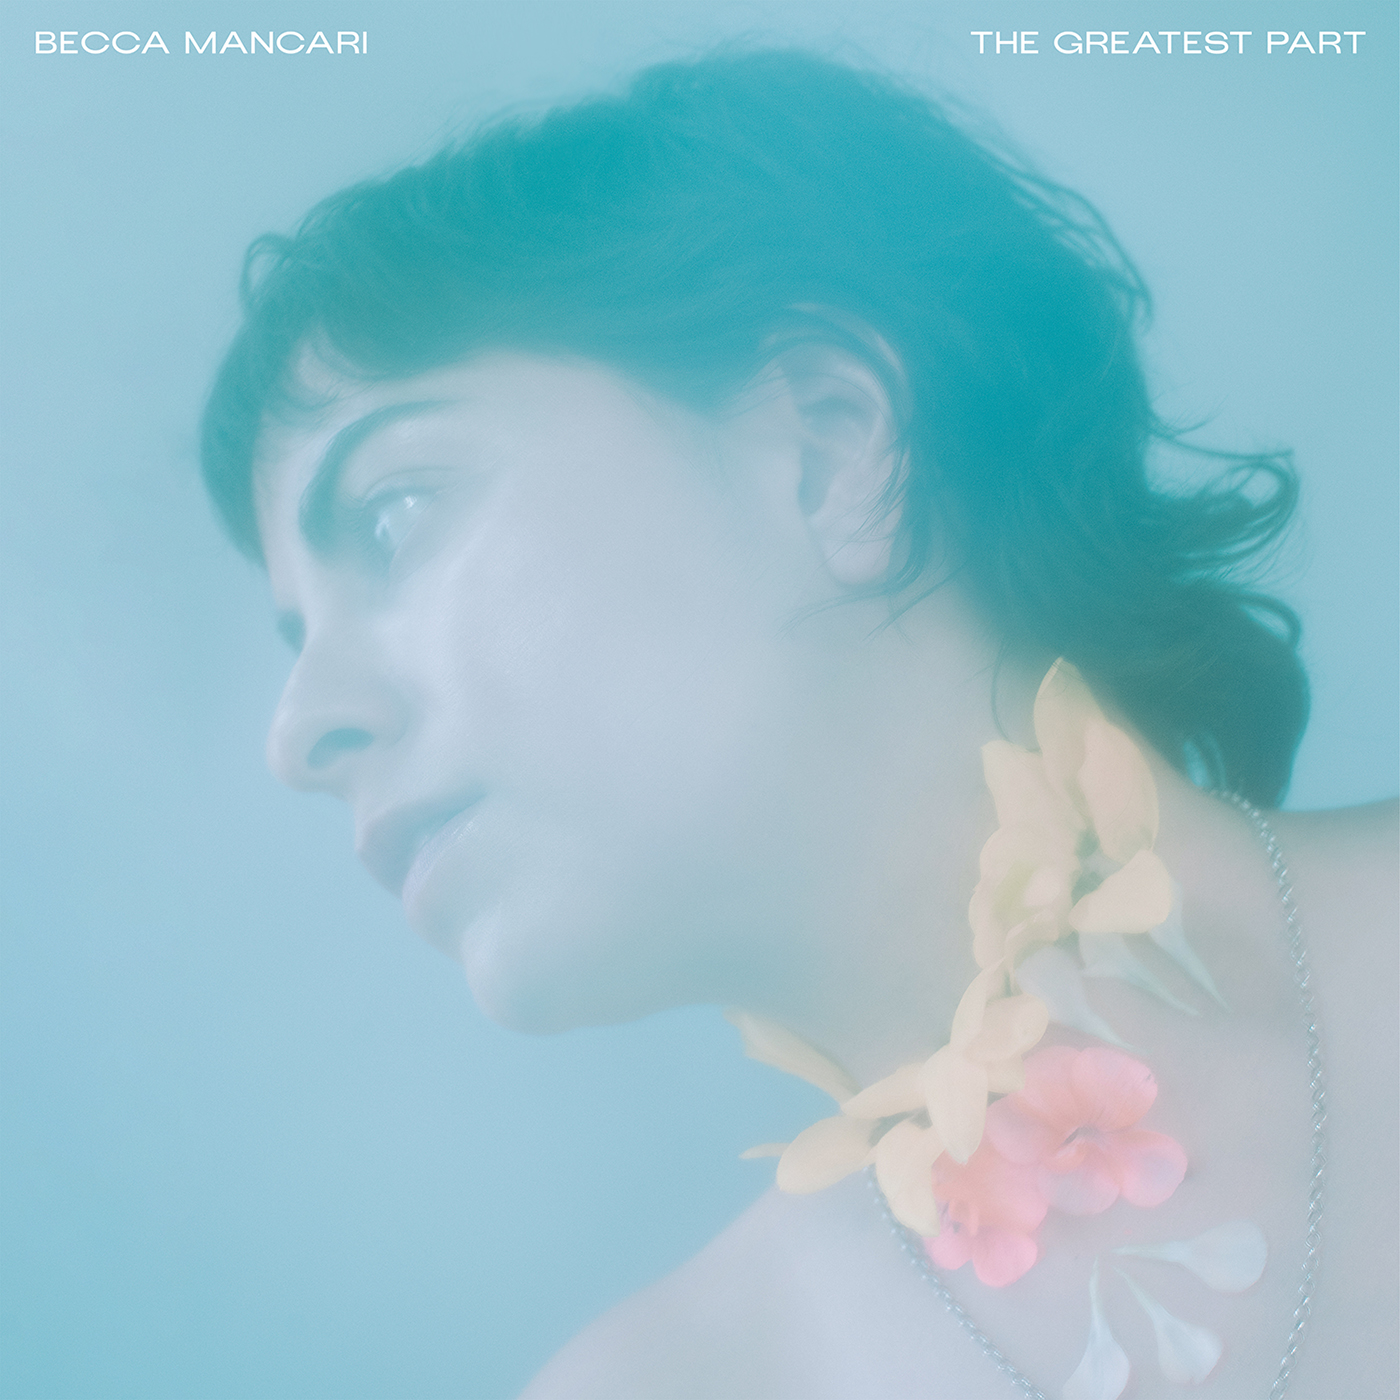 becca mancari the greatest part artist of the month album cover artwork